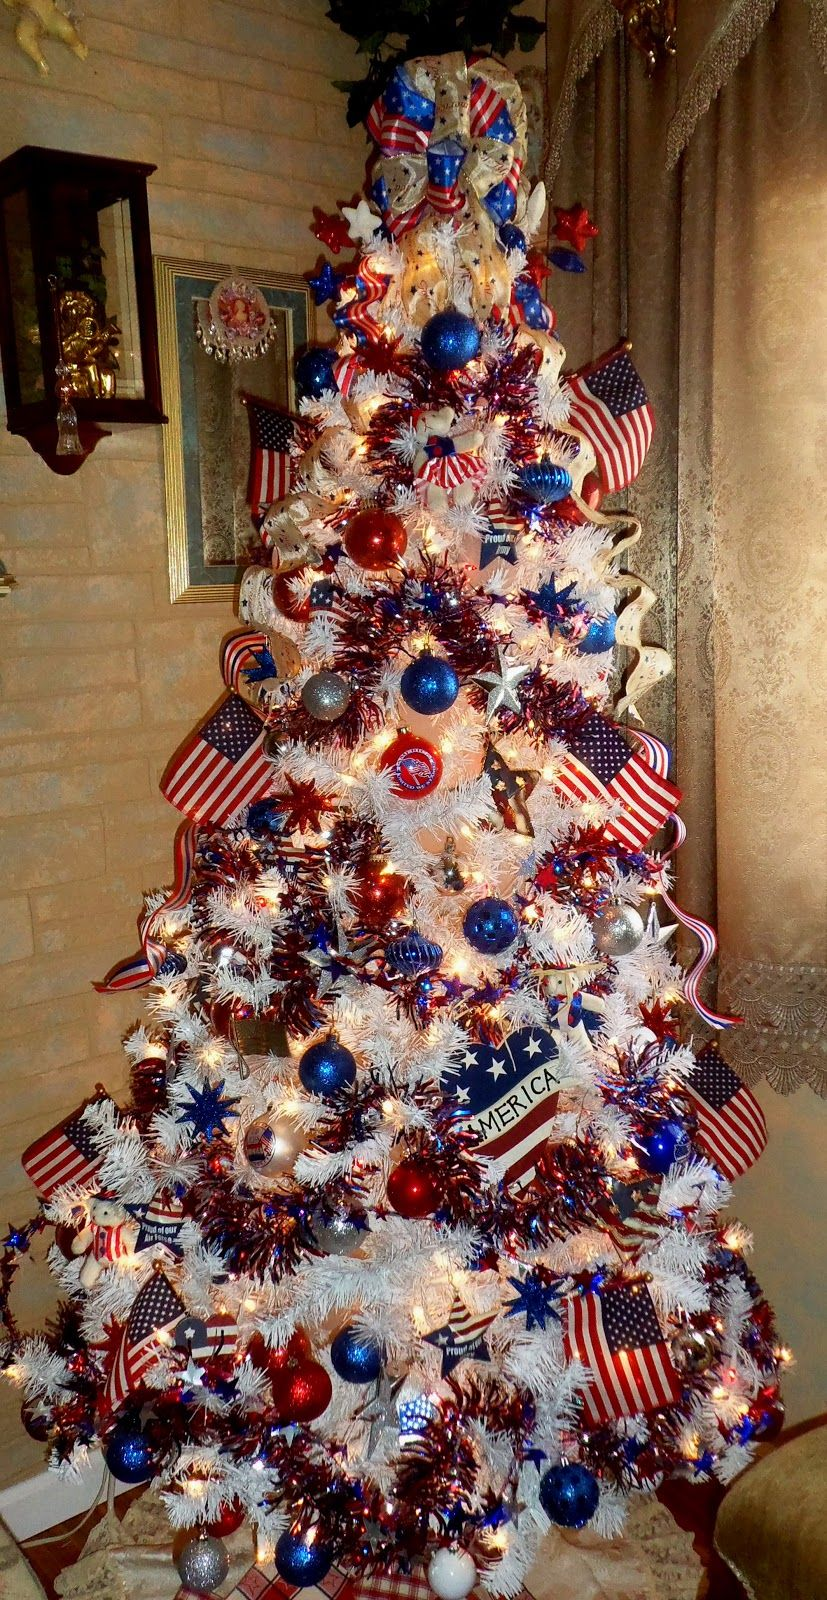 Americana christmas ornaments - I Love Having A Patriotic Tree At Christmas We Have Special Decorations Lights American Flags And Pictures In Frames Of The Family Soldiers